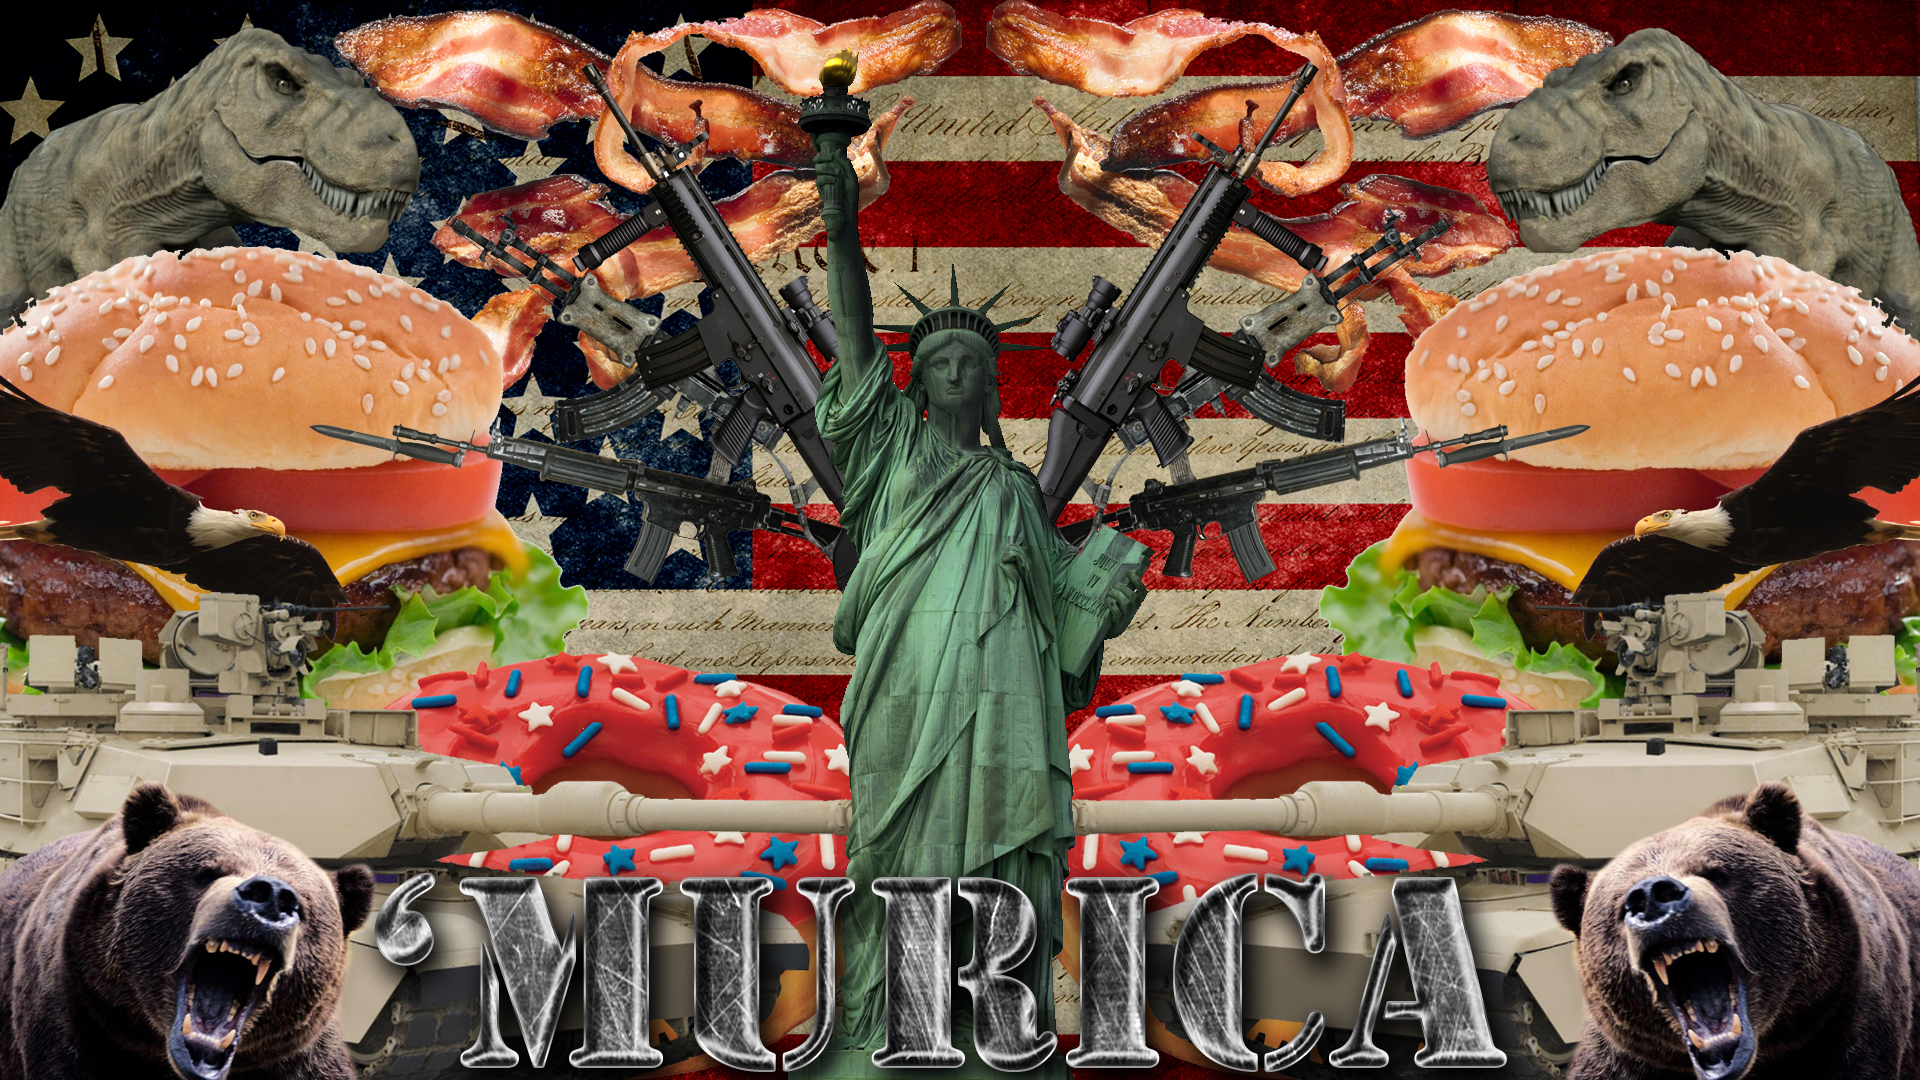 https://i.kym-cdn.com/entries/icons/original/000/011/859/murica.jpg